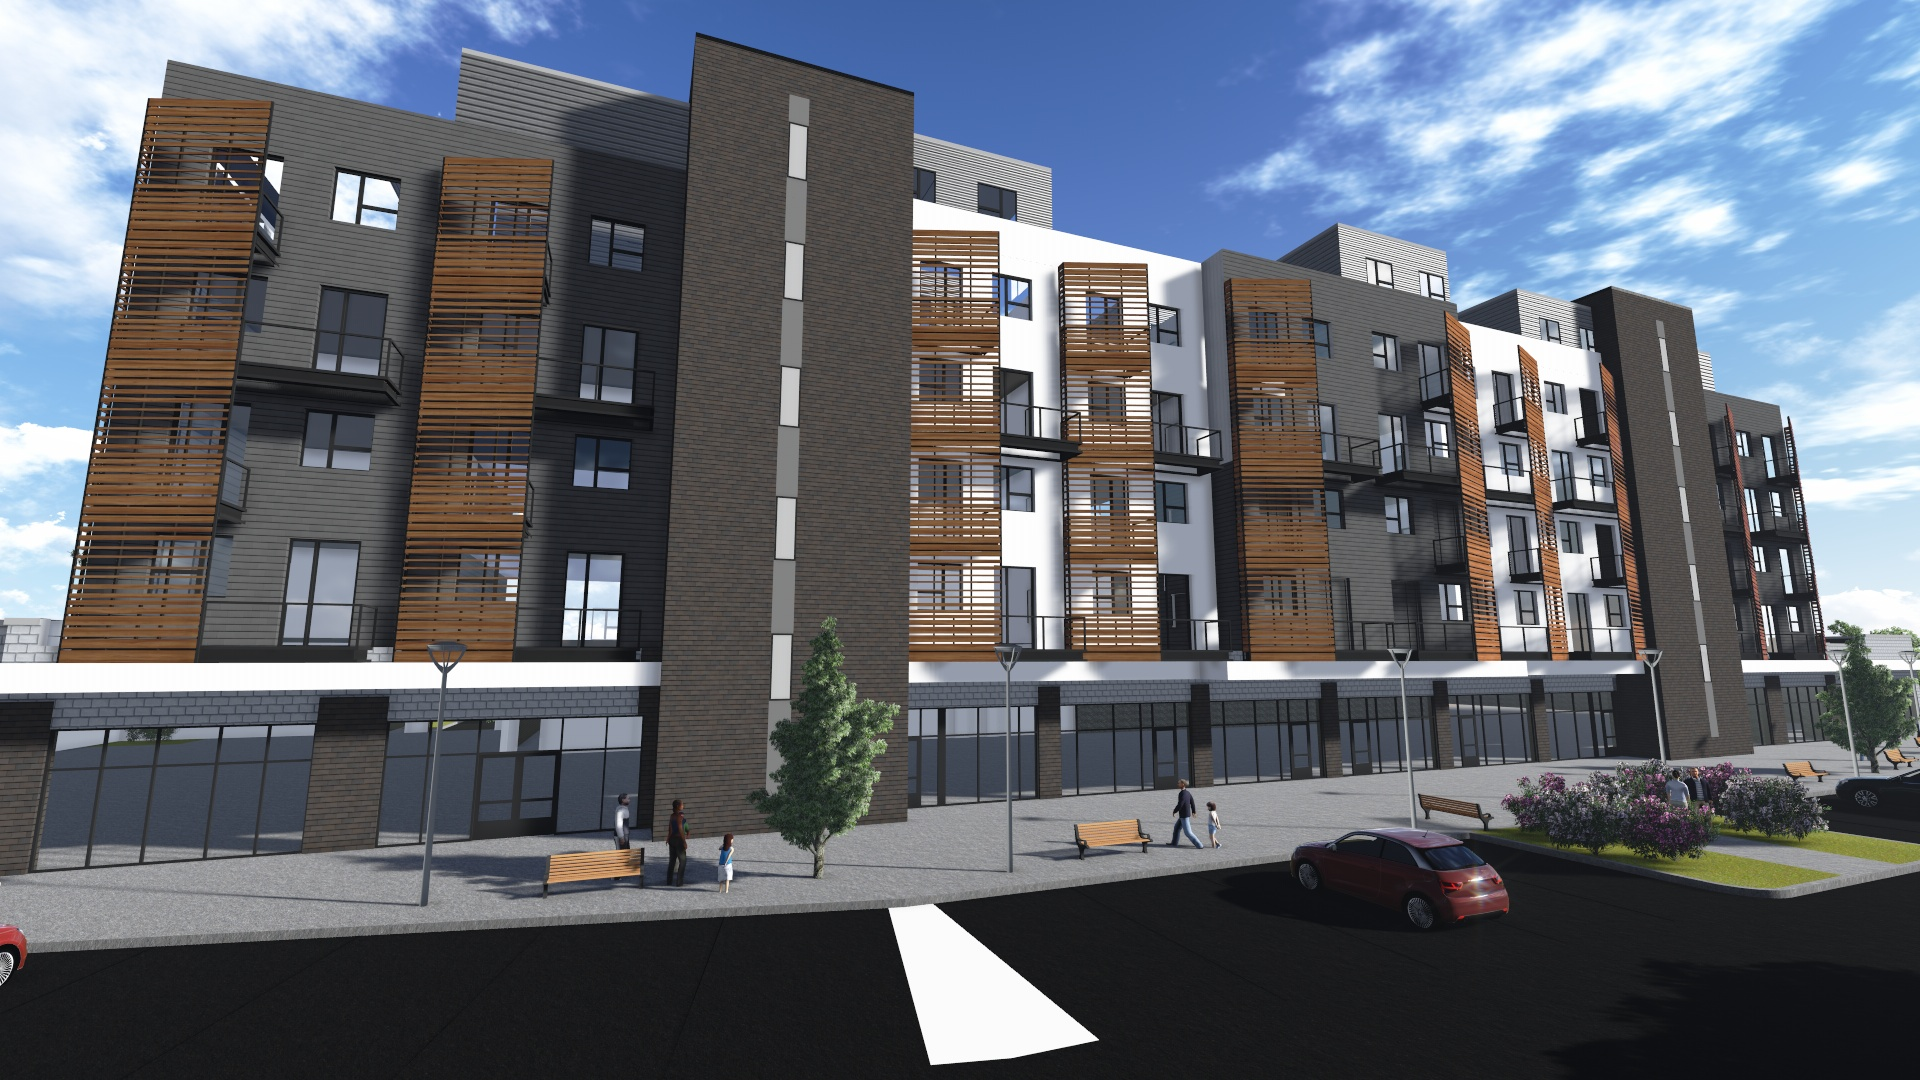 Mixed Use Commercial and Residential Development